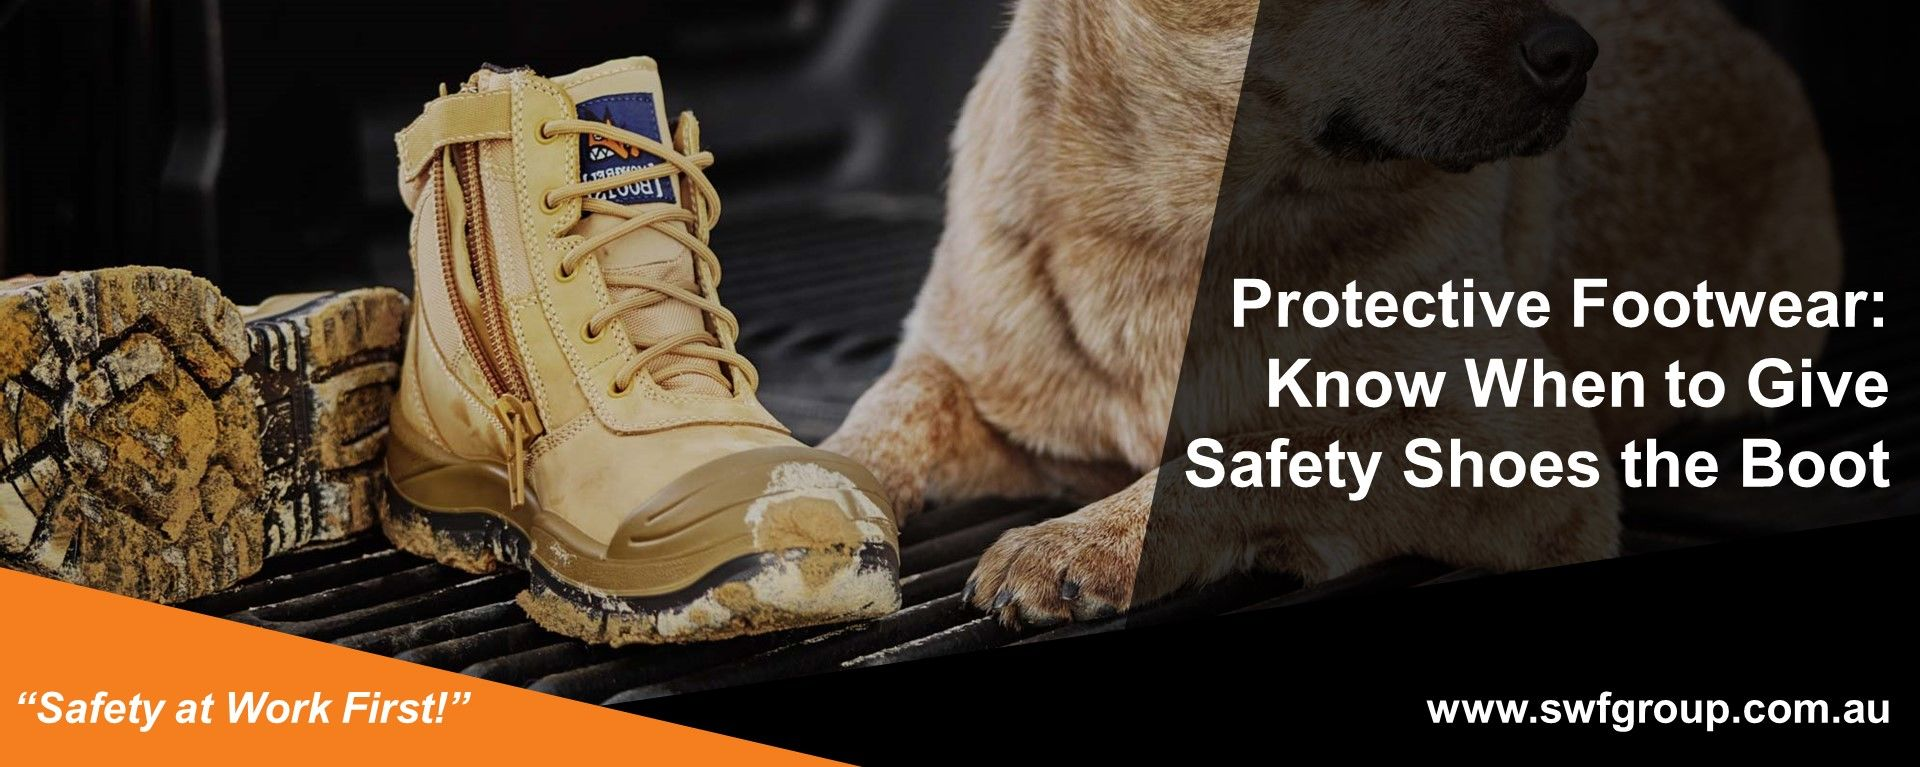 Protective Footwear Know When to Give Safety Shoes the Boot